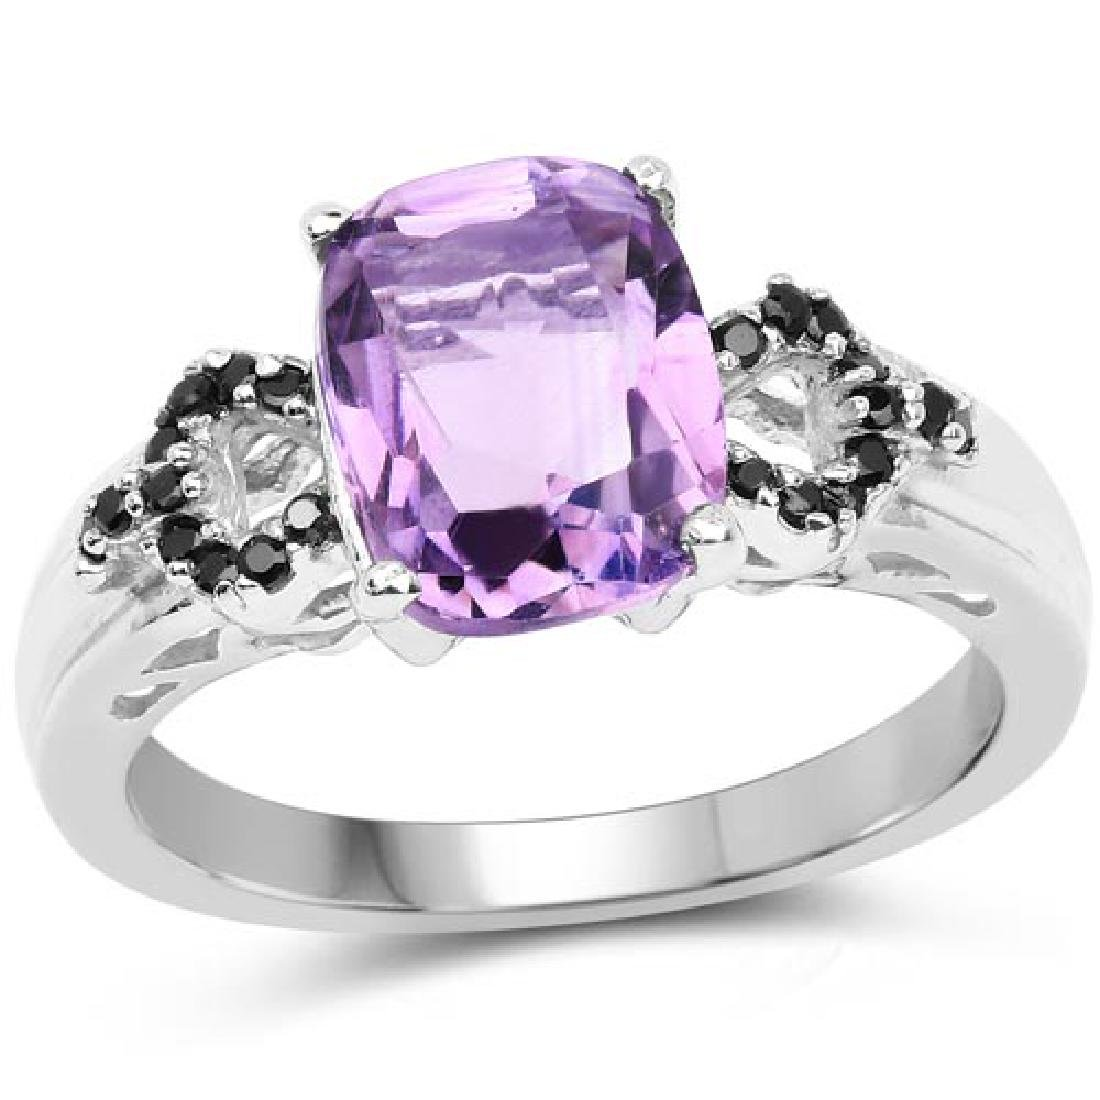 1.60 Carat Genuine Amethyst and Black Spinel .925 Sterl